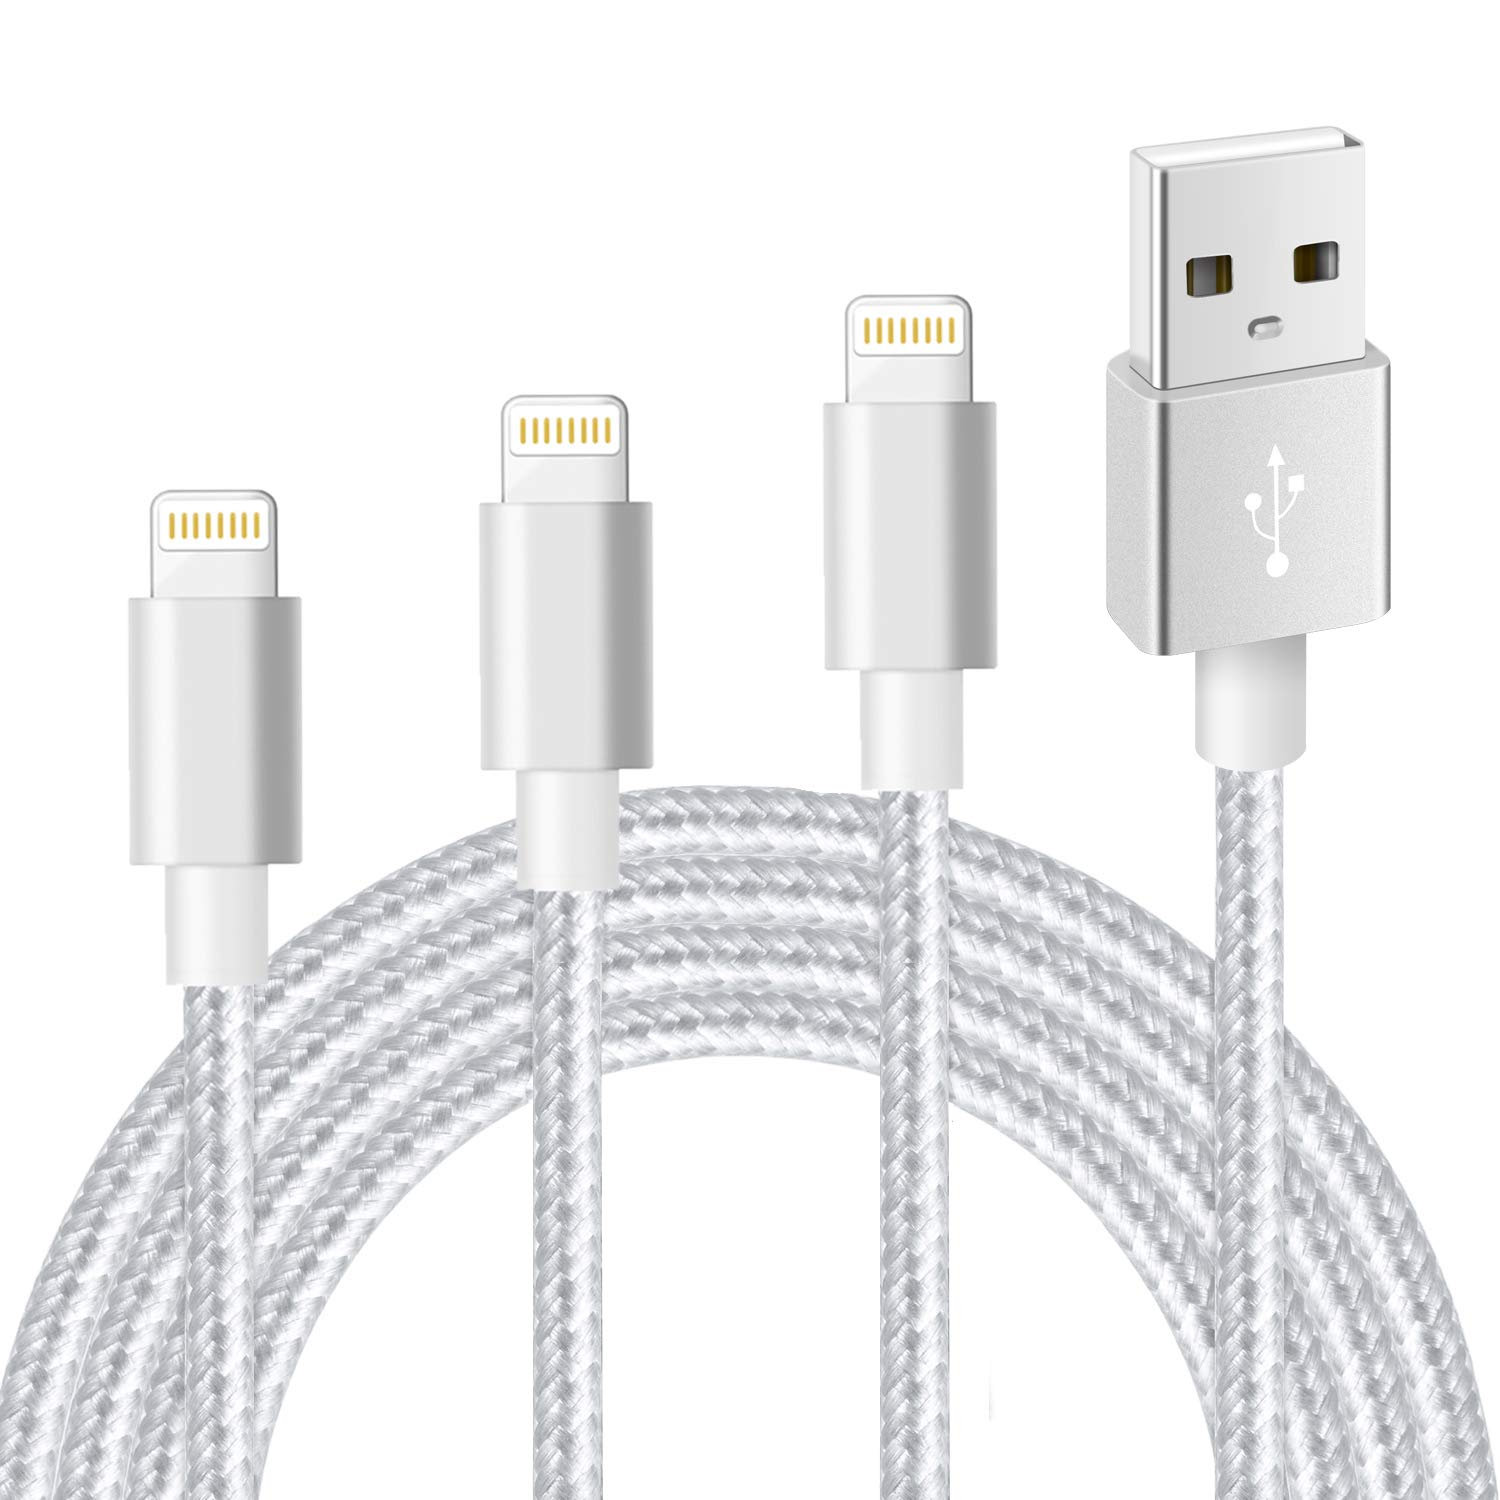 Câble Data + Charge Rapide USB Type Apple Nylon Lot de 3 Pièces